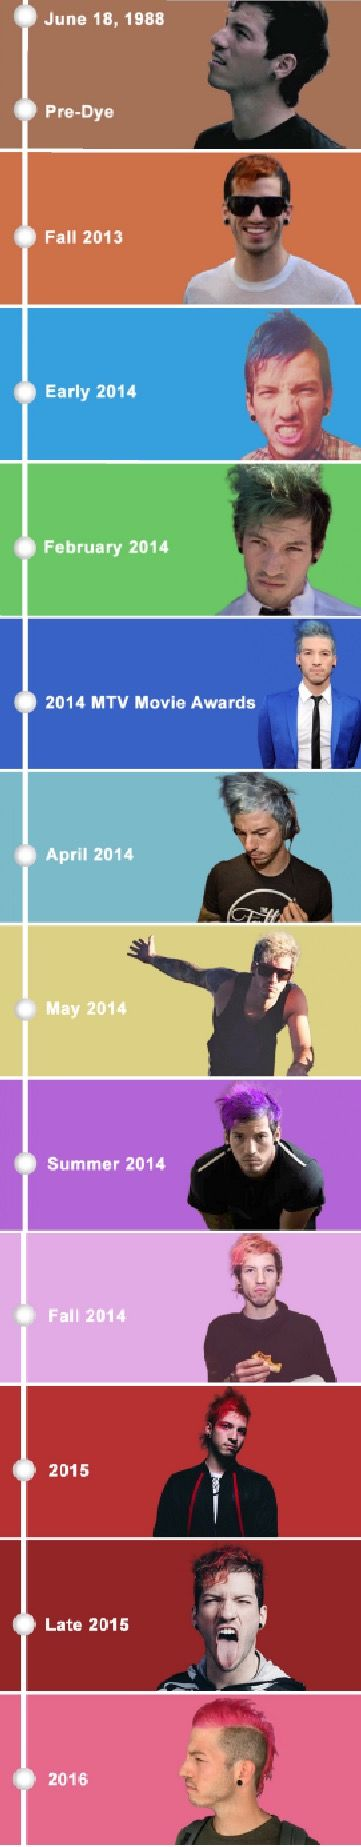 a brief history lesson of josh dun's hair :)